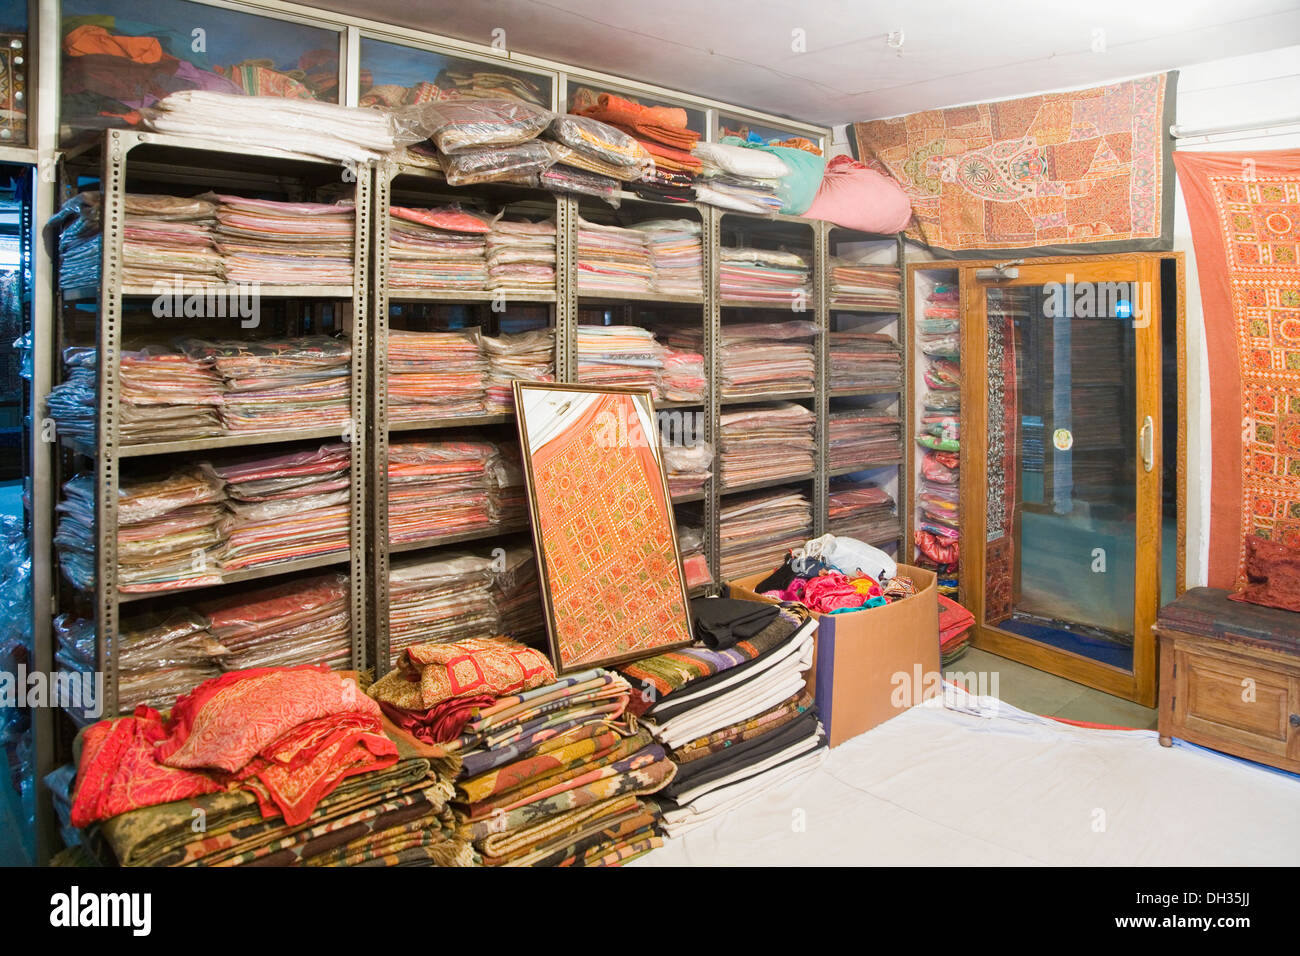 Shopping Interiors Clothing Store High Resolution Stock Photography And Images Alamy